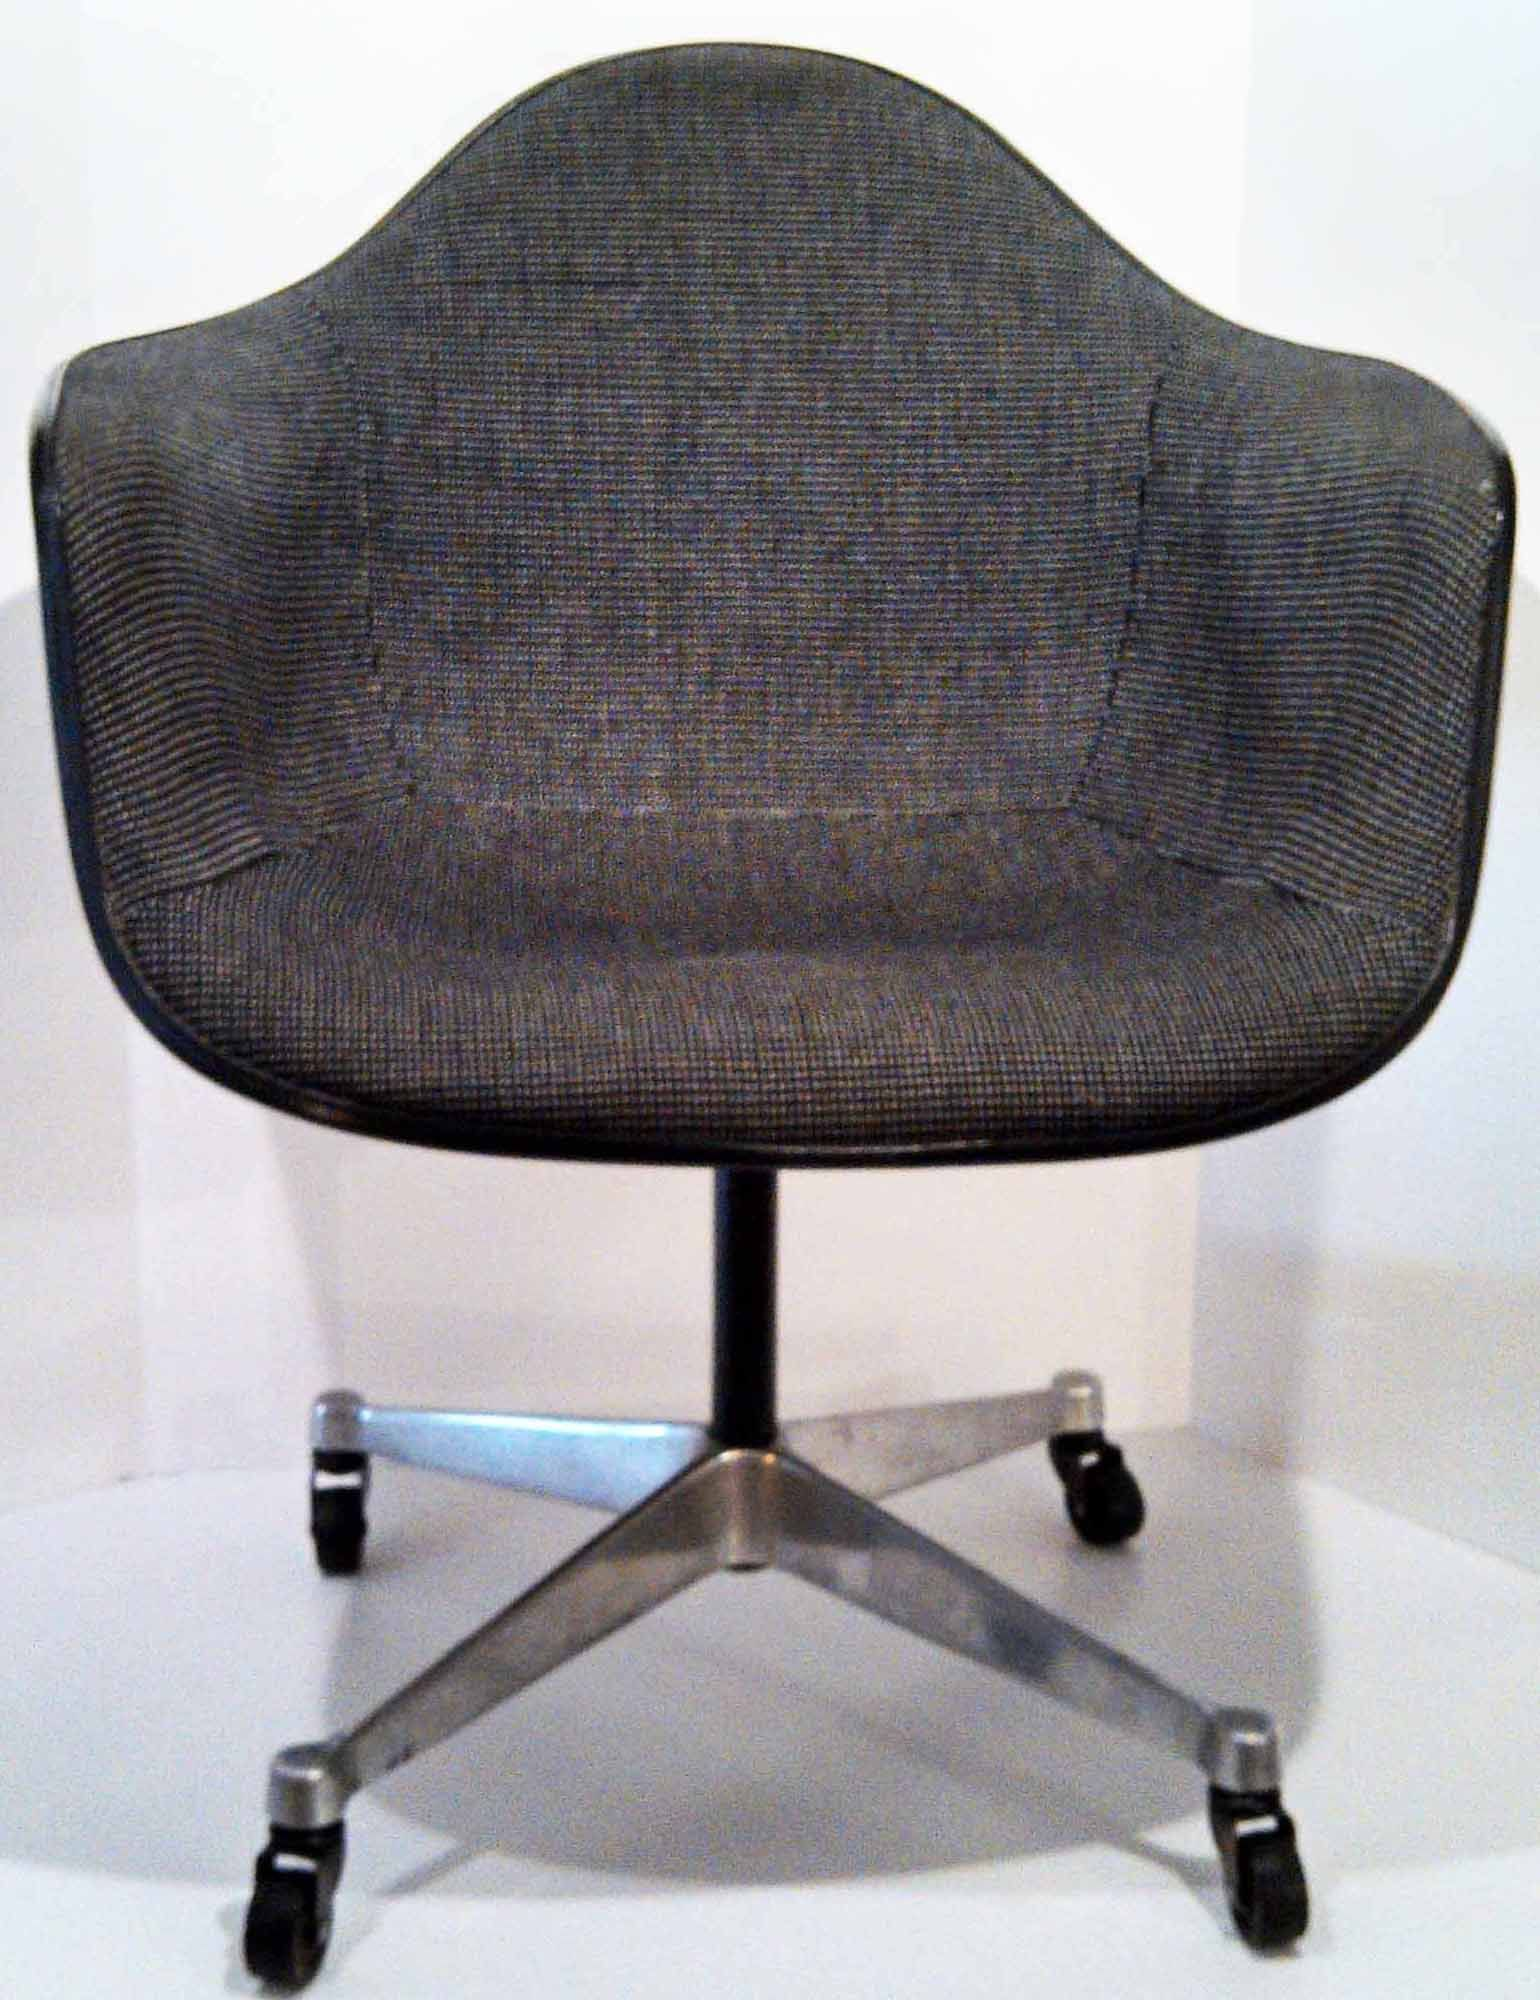 charles eames design fiberglass shell chair produced by herman